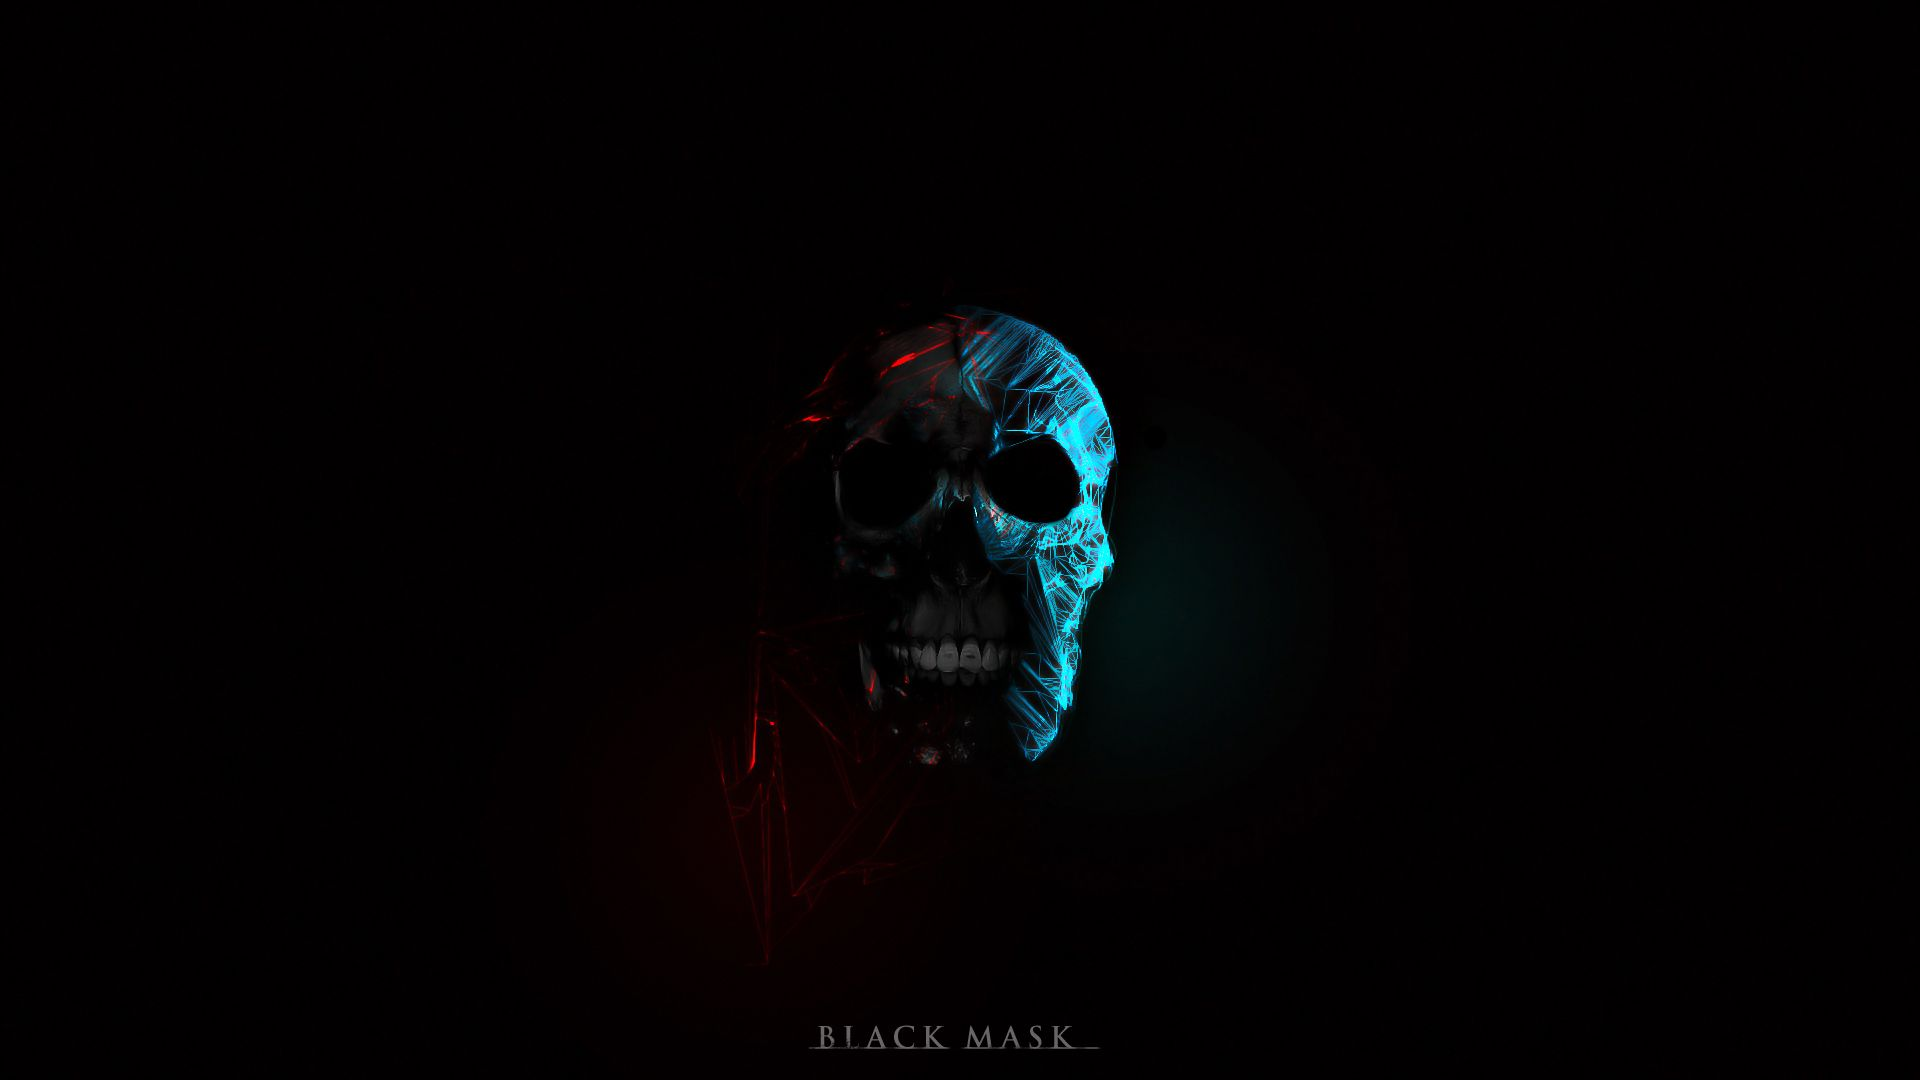 Pin By Tawsiv Hoque On Allien Black Mask Wallpaper Mask